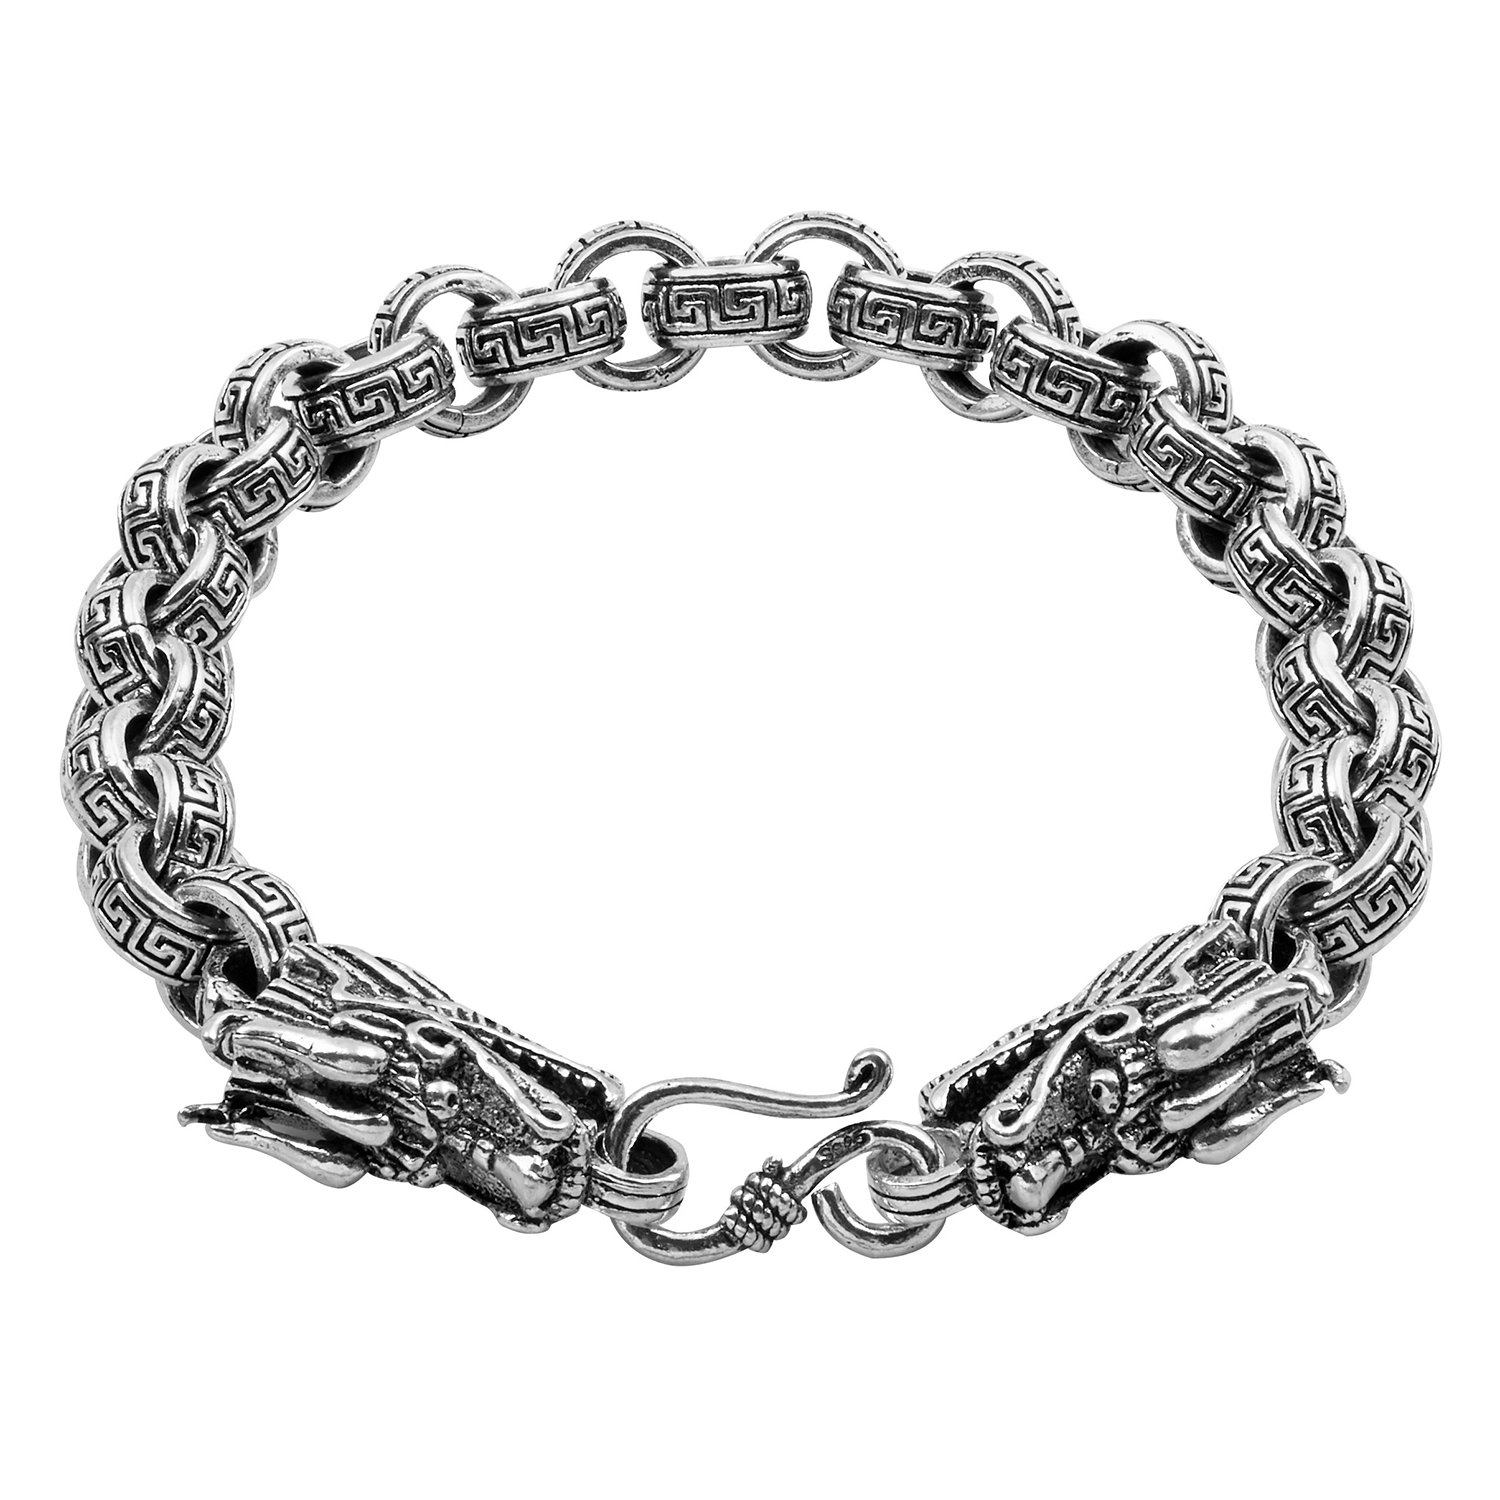 OS Sterling Silver 7mm Double Dragon Thick Rolo Chain Bracelet 7.5 8 or 8.5 HY US/_JWE/_B07MJ8S5KX